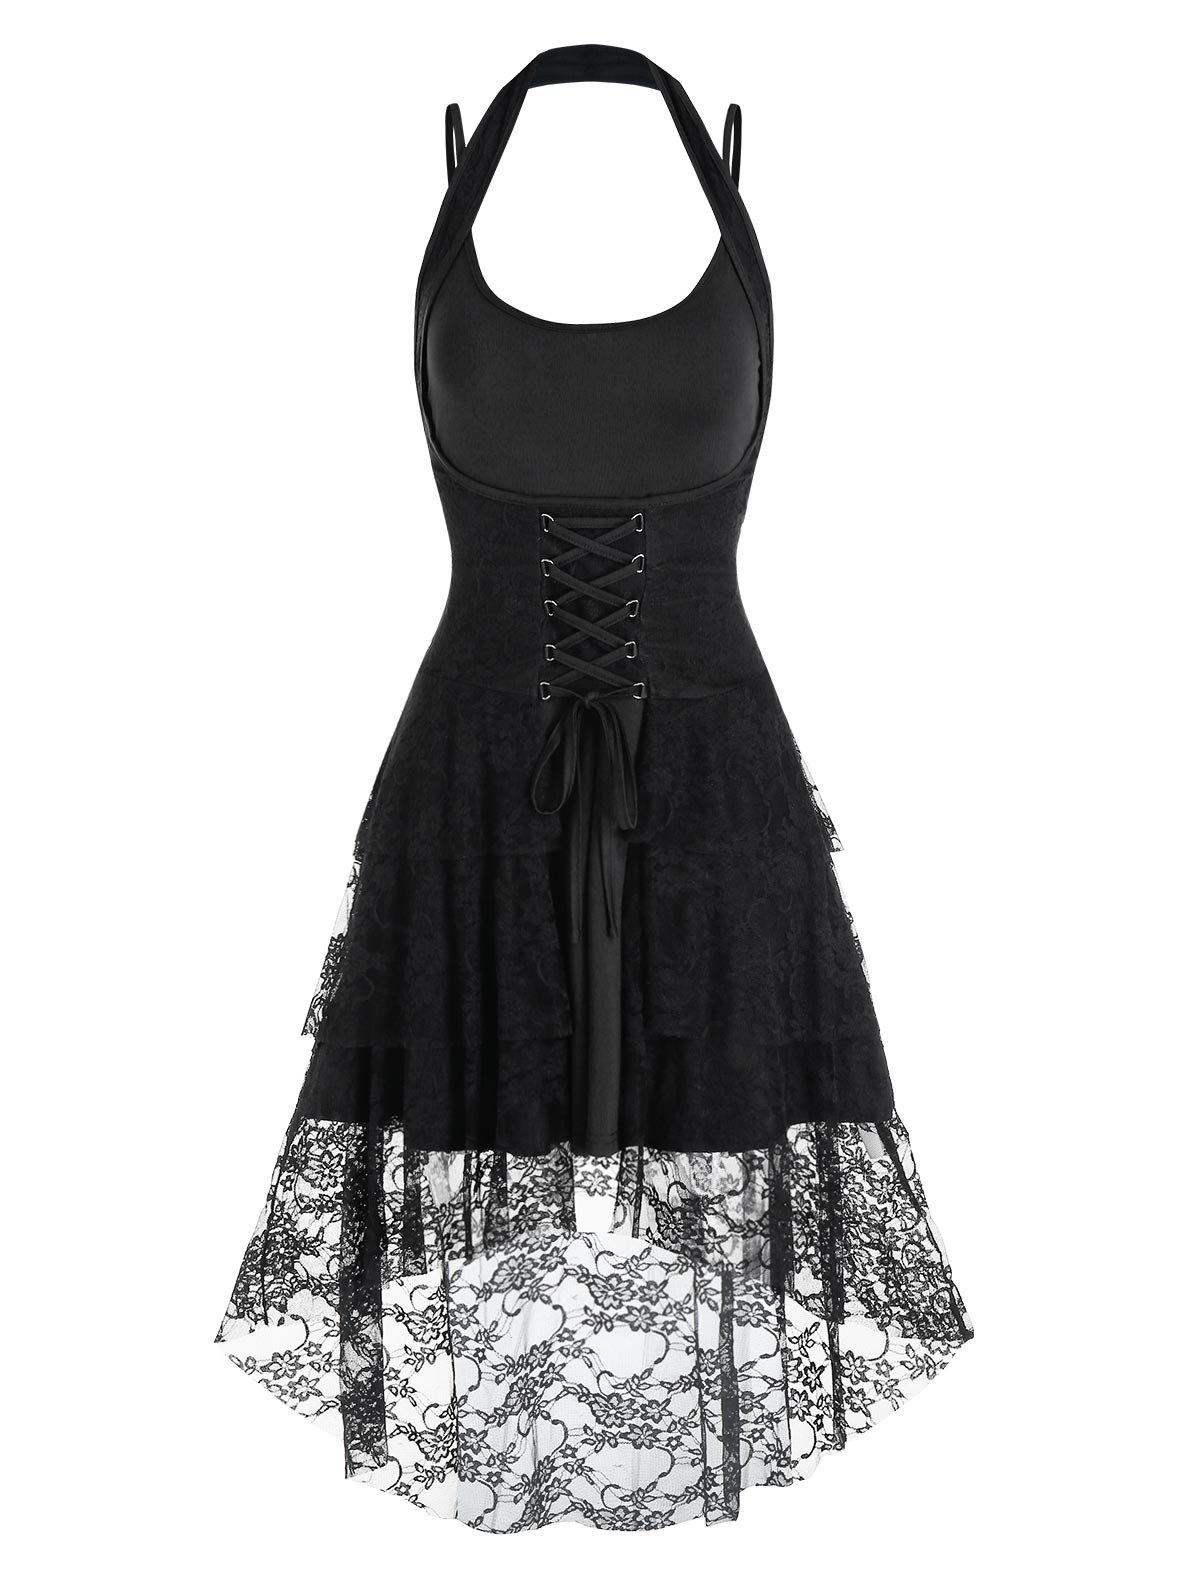 Store Lace-up Flower Lace Halter High Low Skirt and Plain Dress